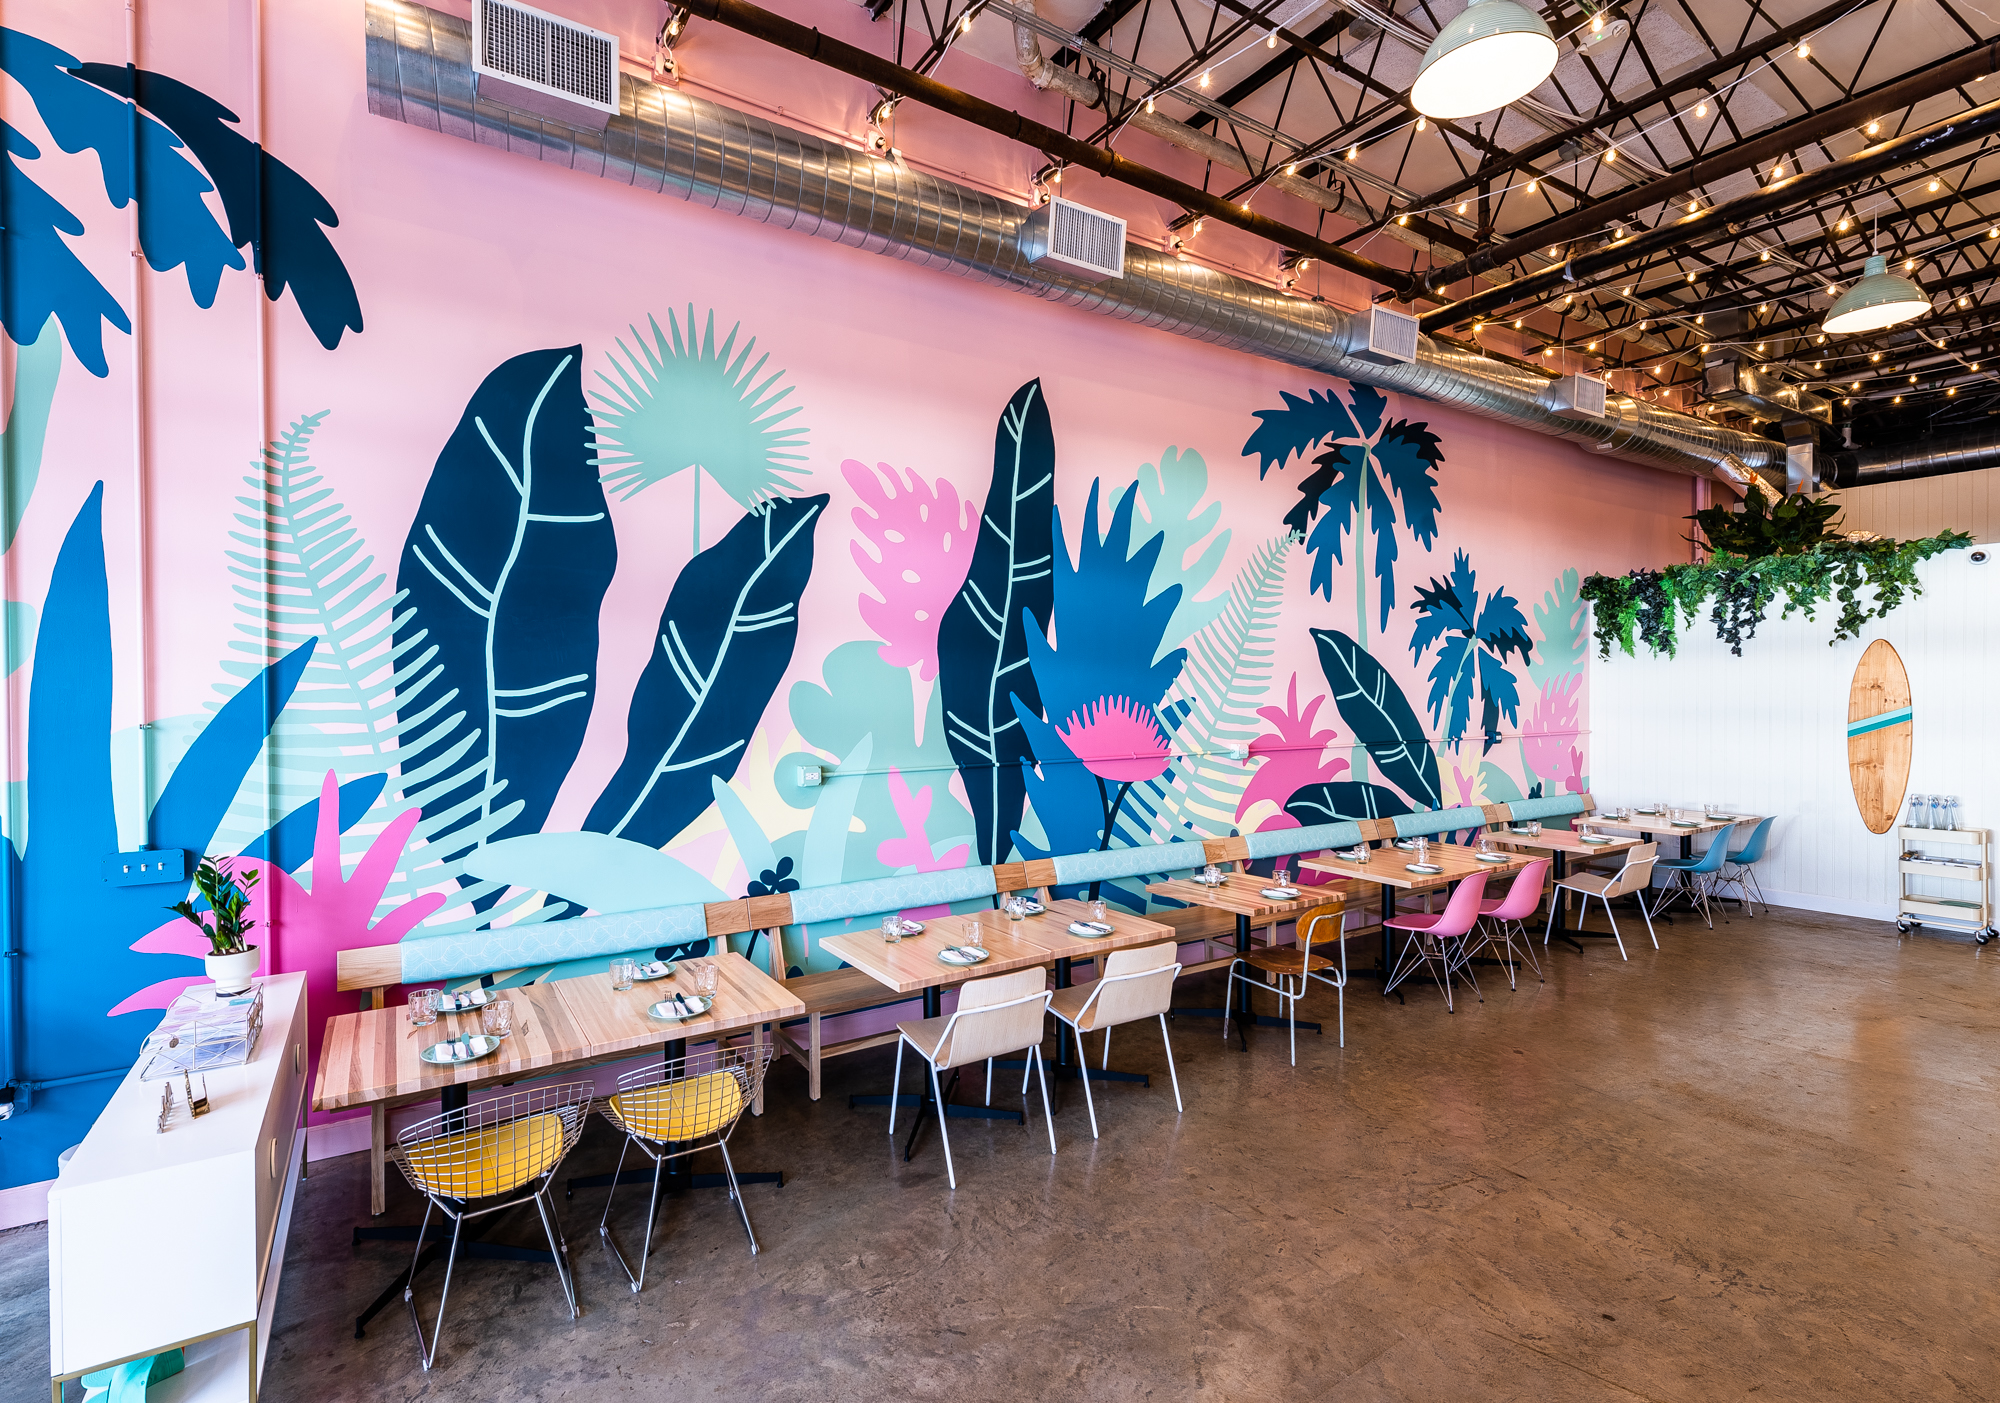 Coconut Club mural